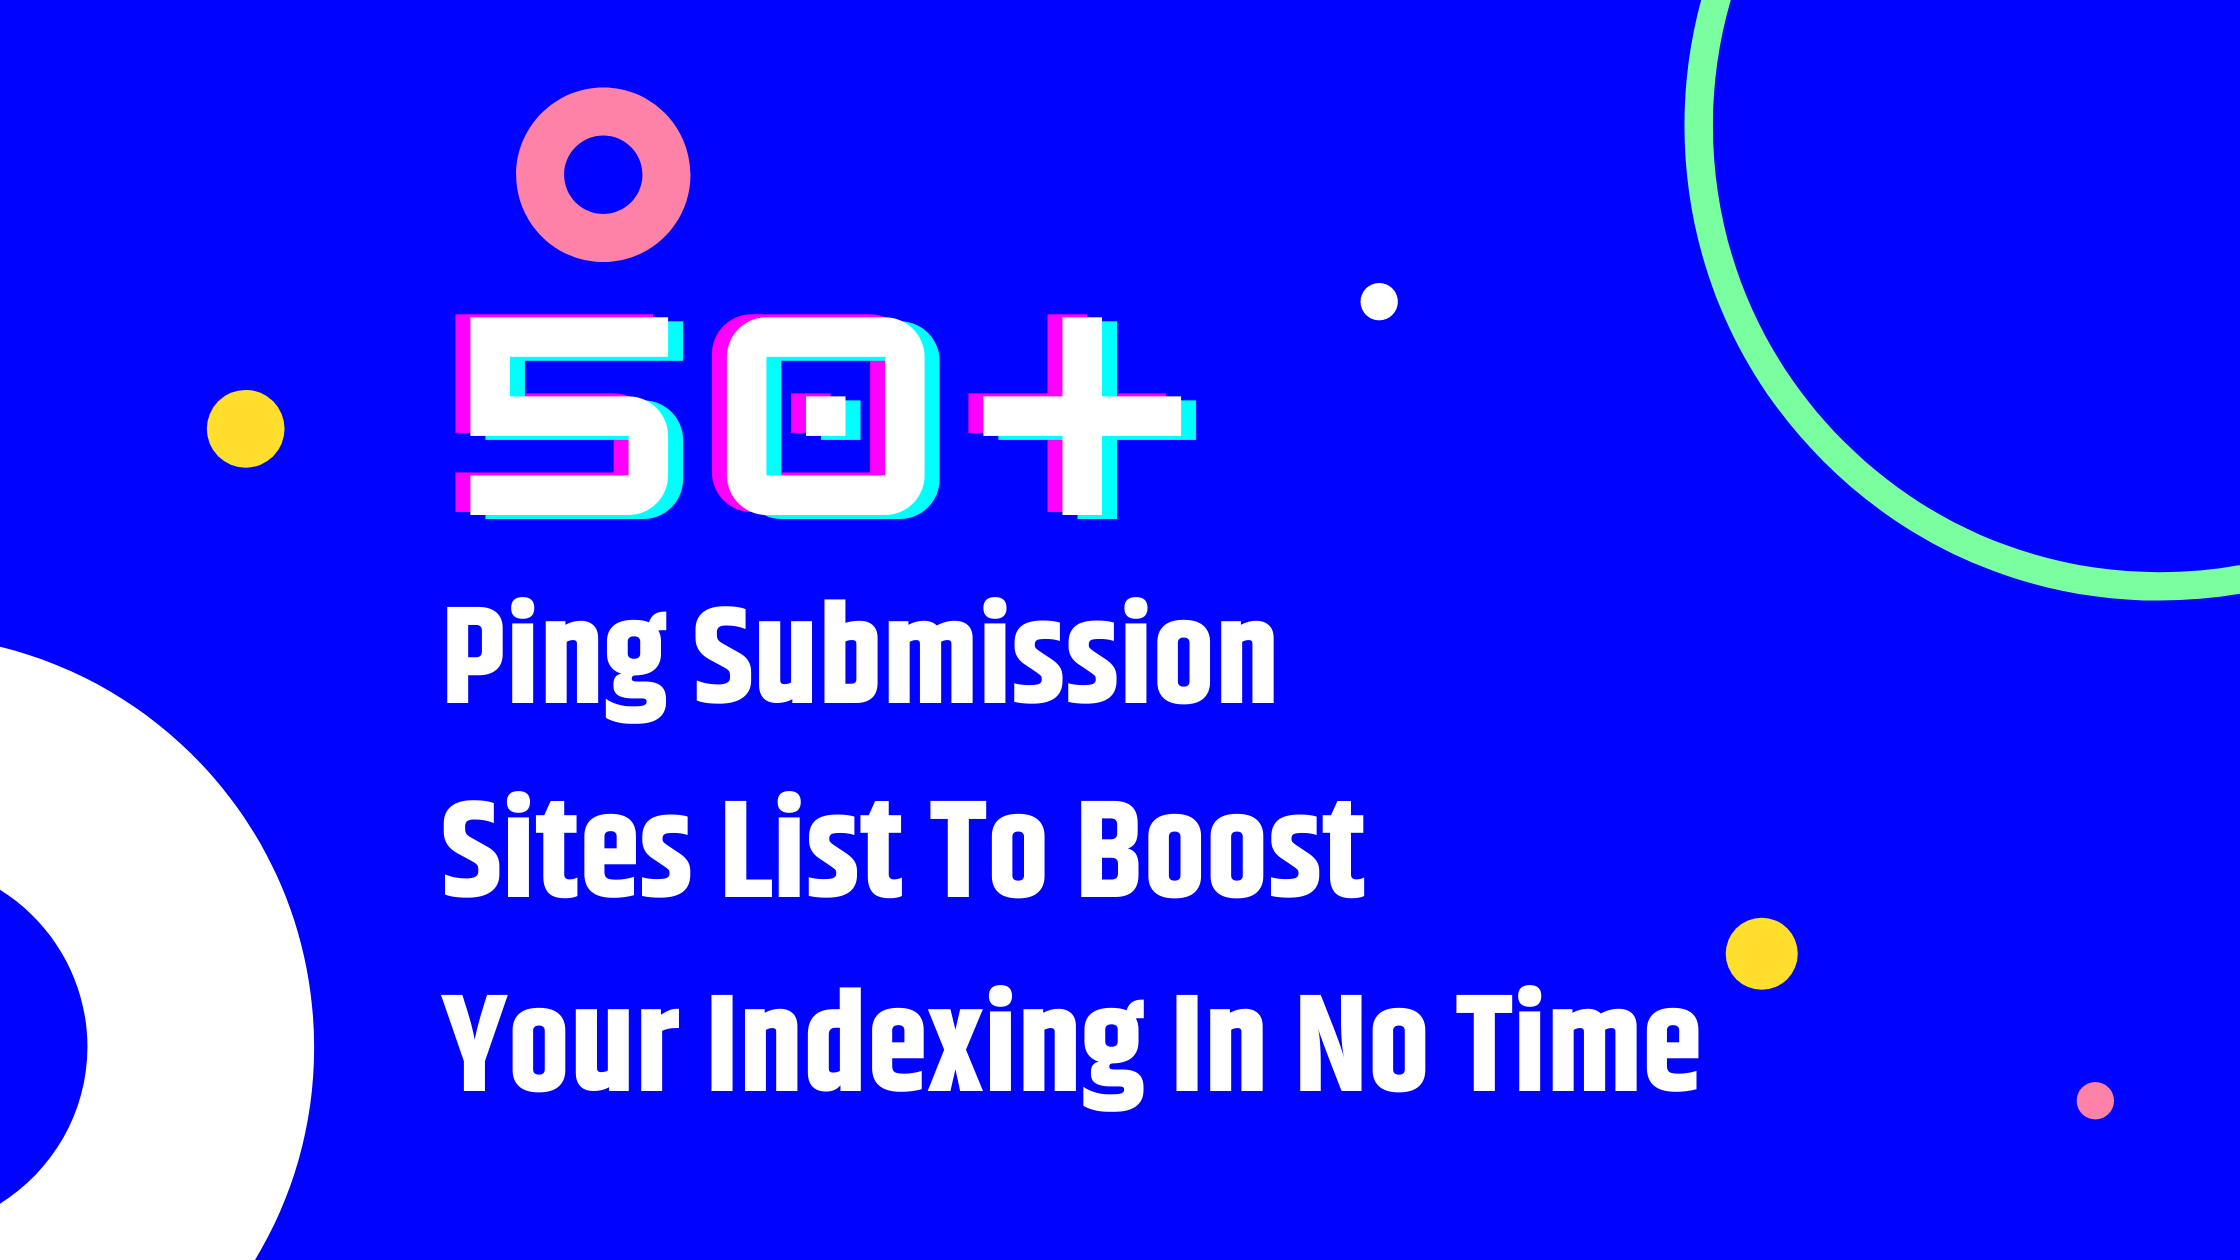 50 ping submission site